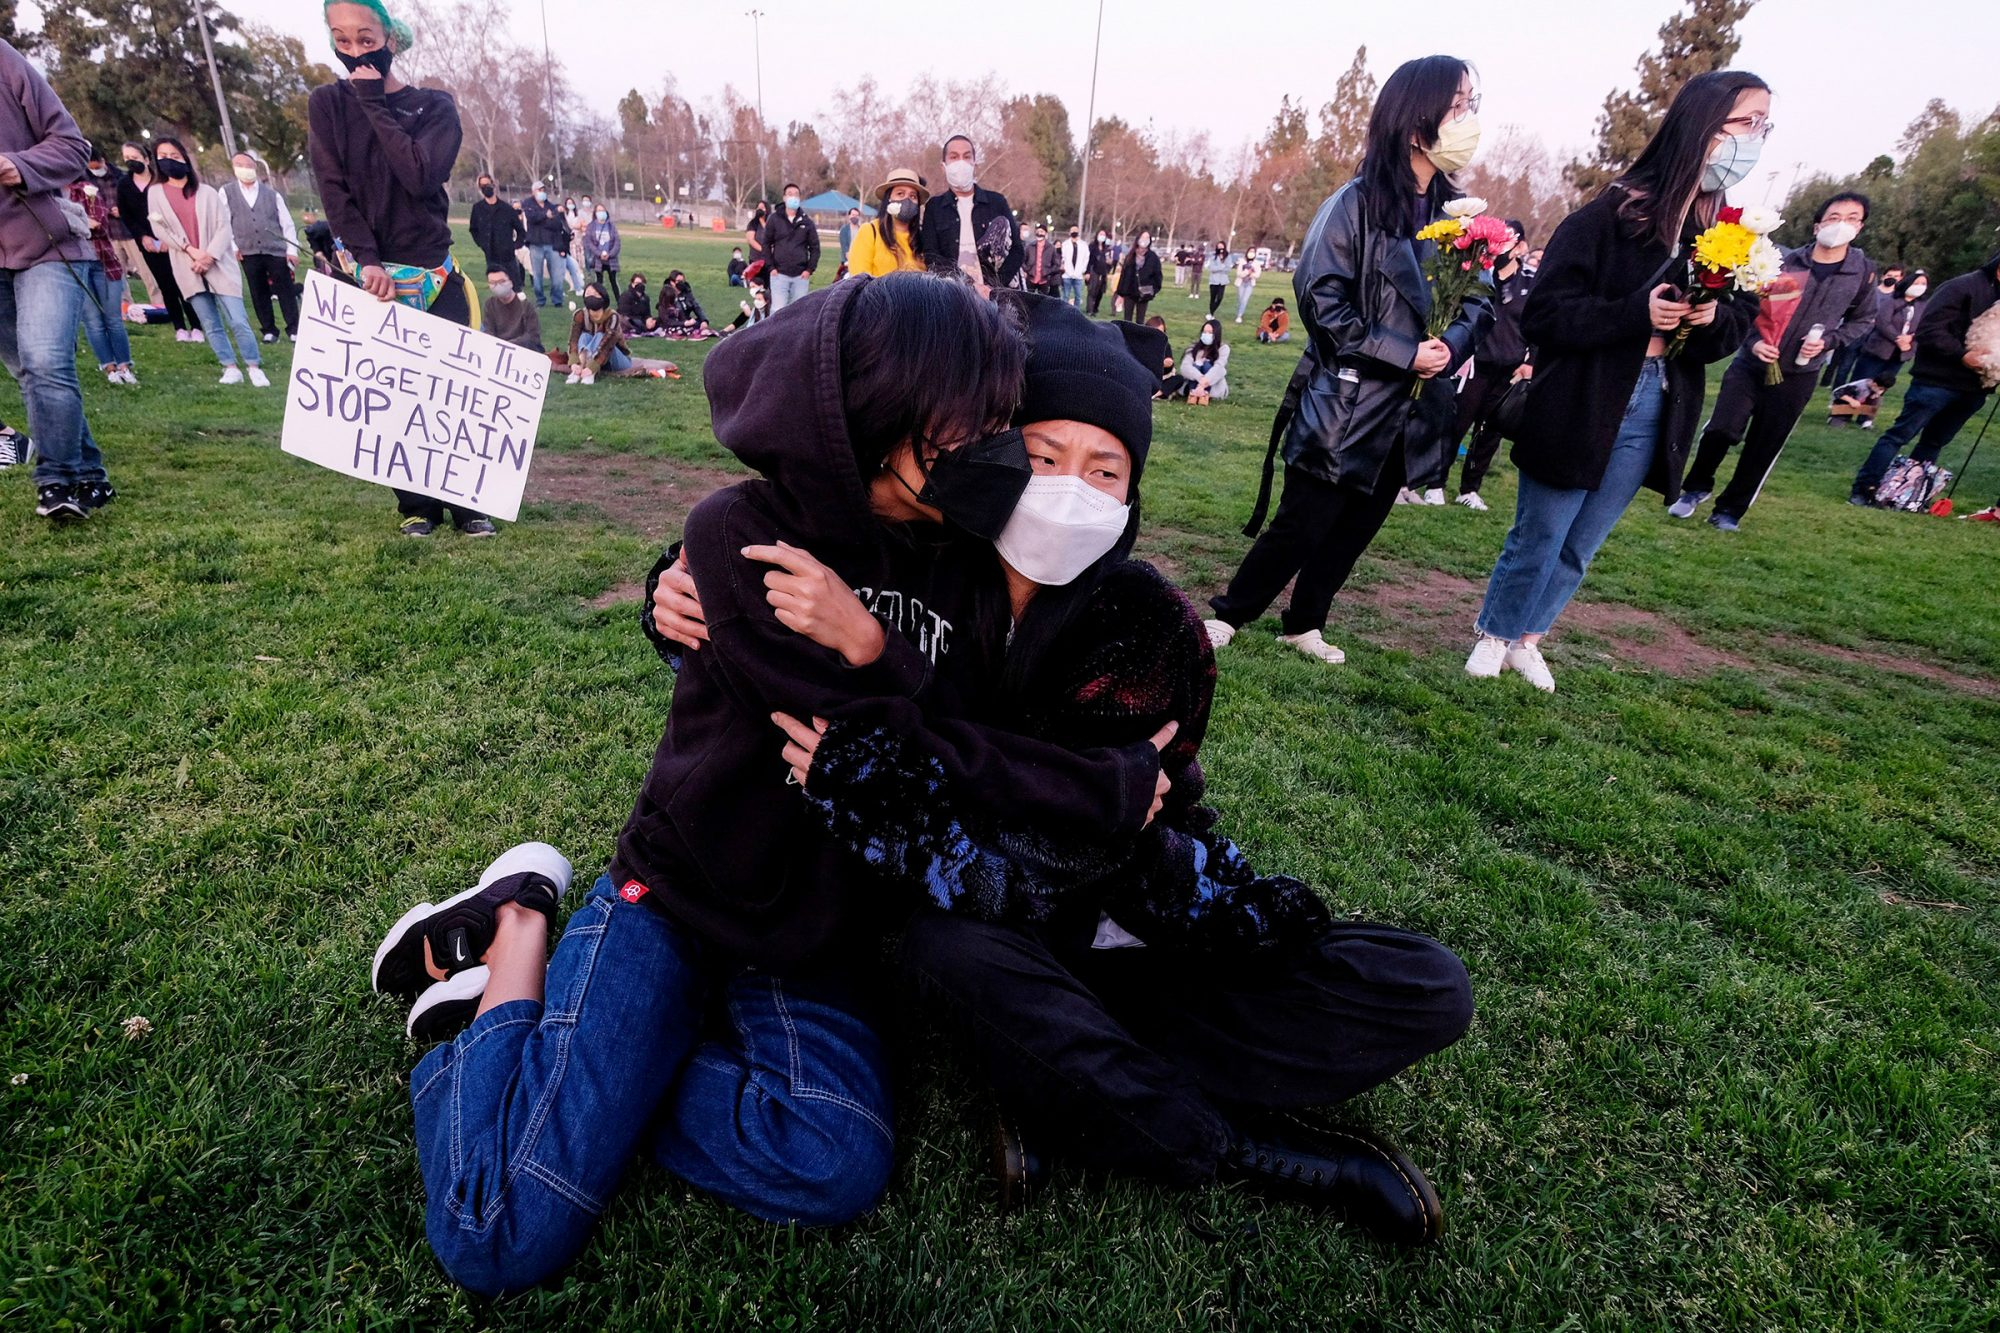 People take part in a candlelight vigil in standing up against Asian American Pacific Islander (AAPI) hate and violence, at Almansor Park in Alhambra, California, on March 20, 2021